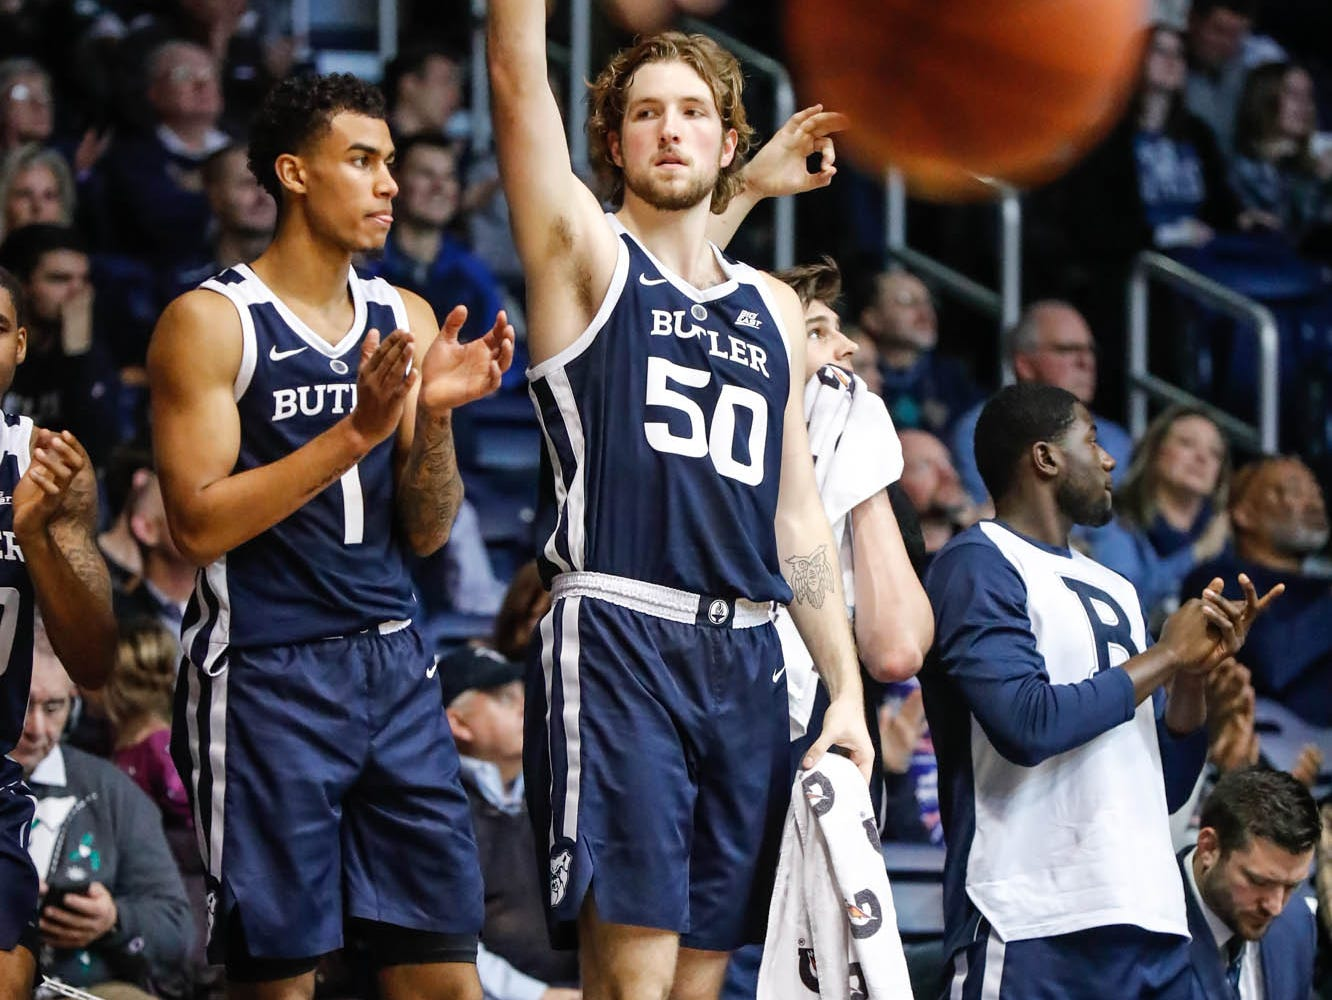 Butler University's forward Jordan Tucker (1), and Joey Brunk (50), cheer on team mates during a game between Butler University and UC Irvine, at Hinkle Fieldhouse on Friday, Dec. 21, 2018.